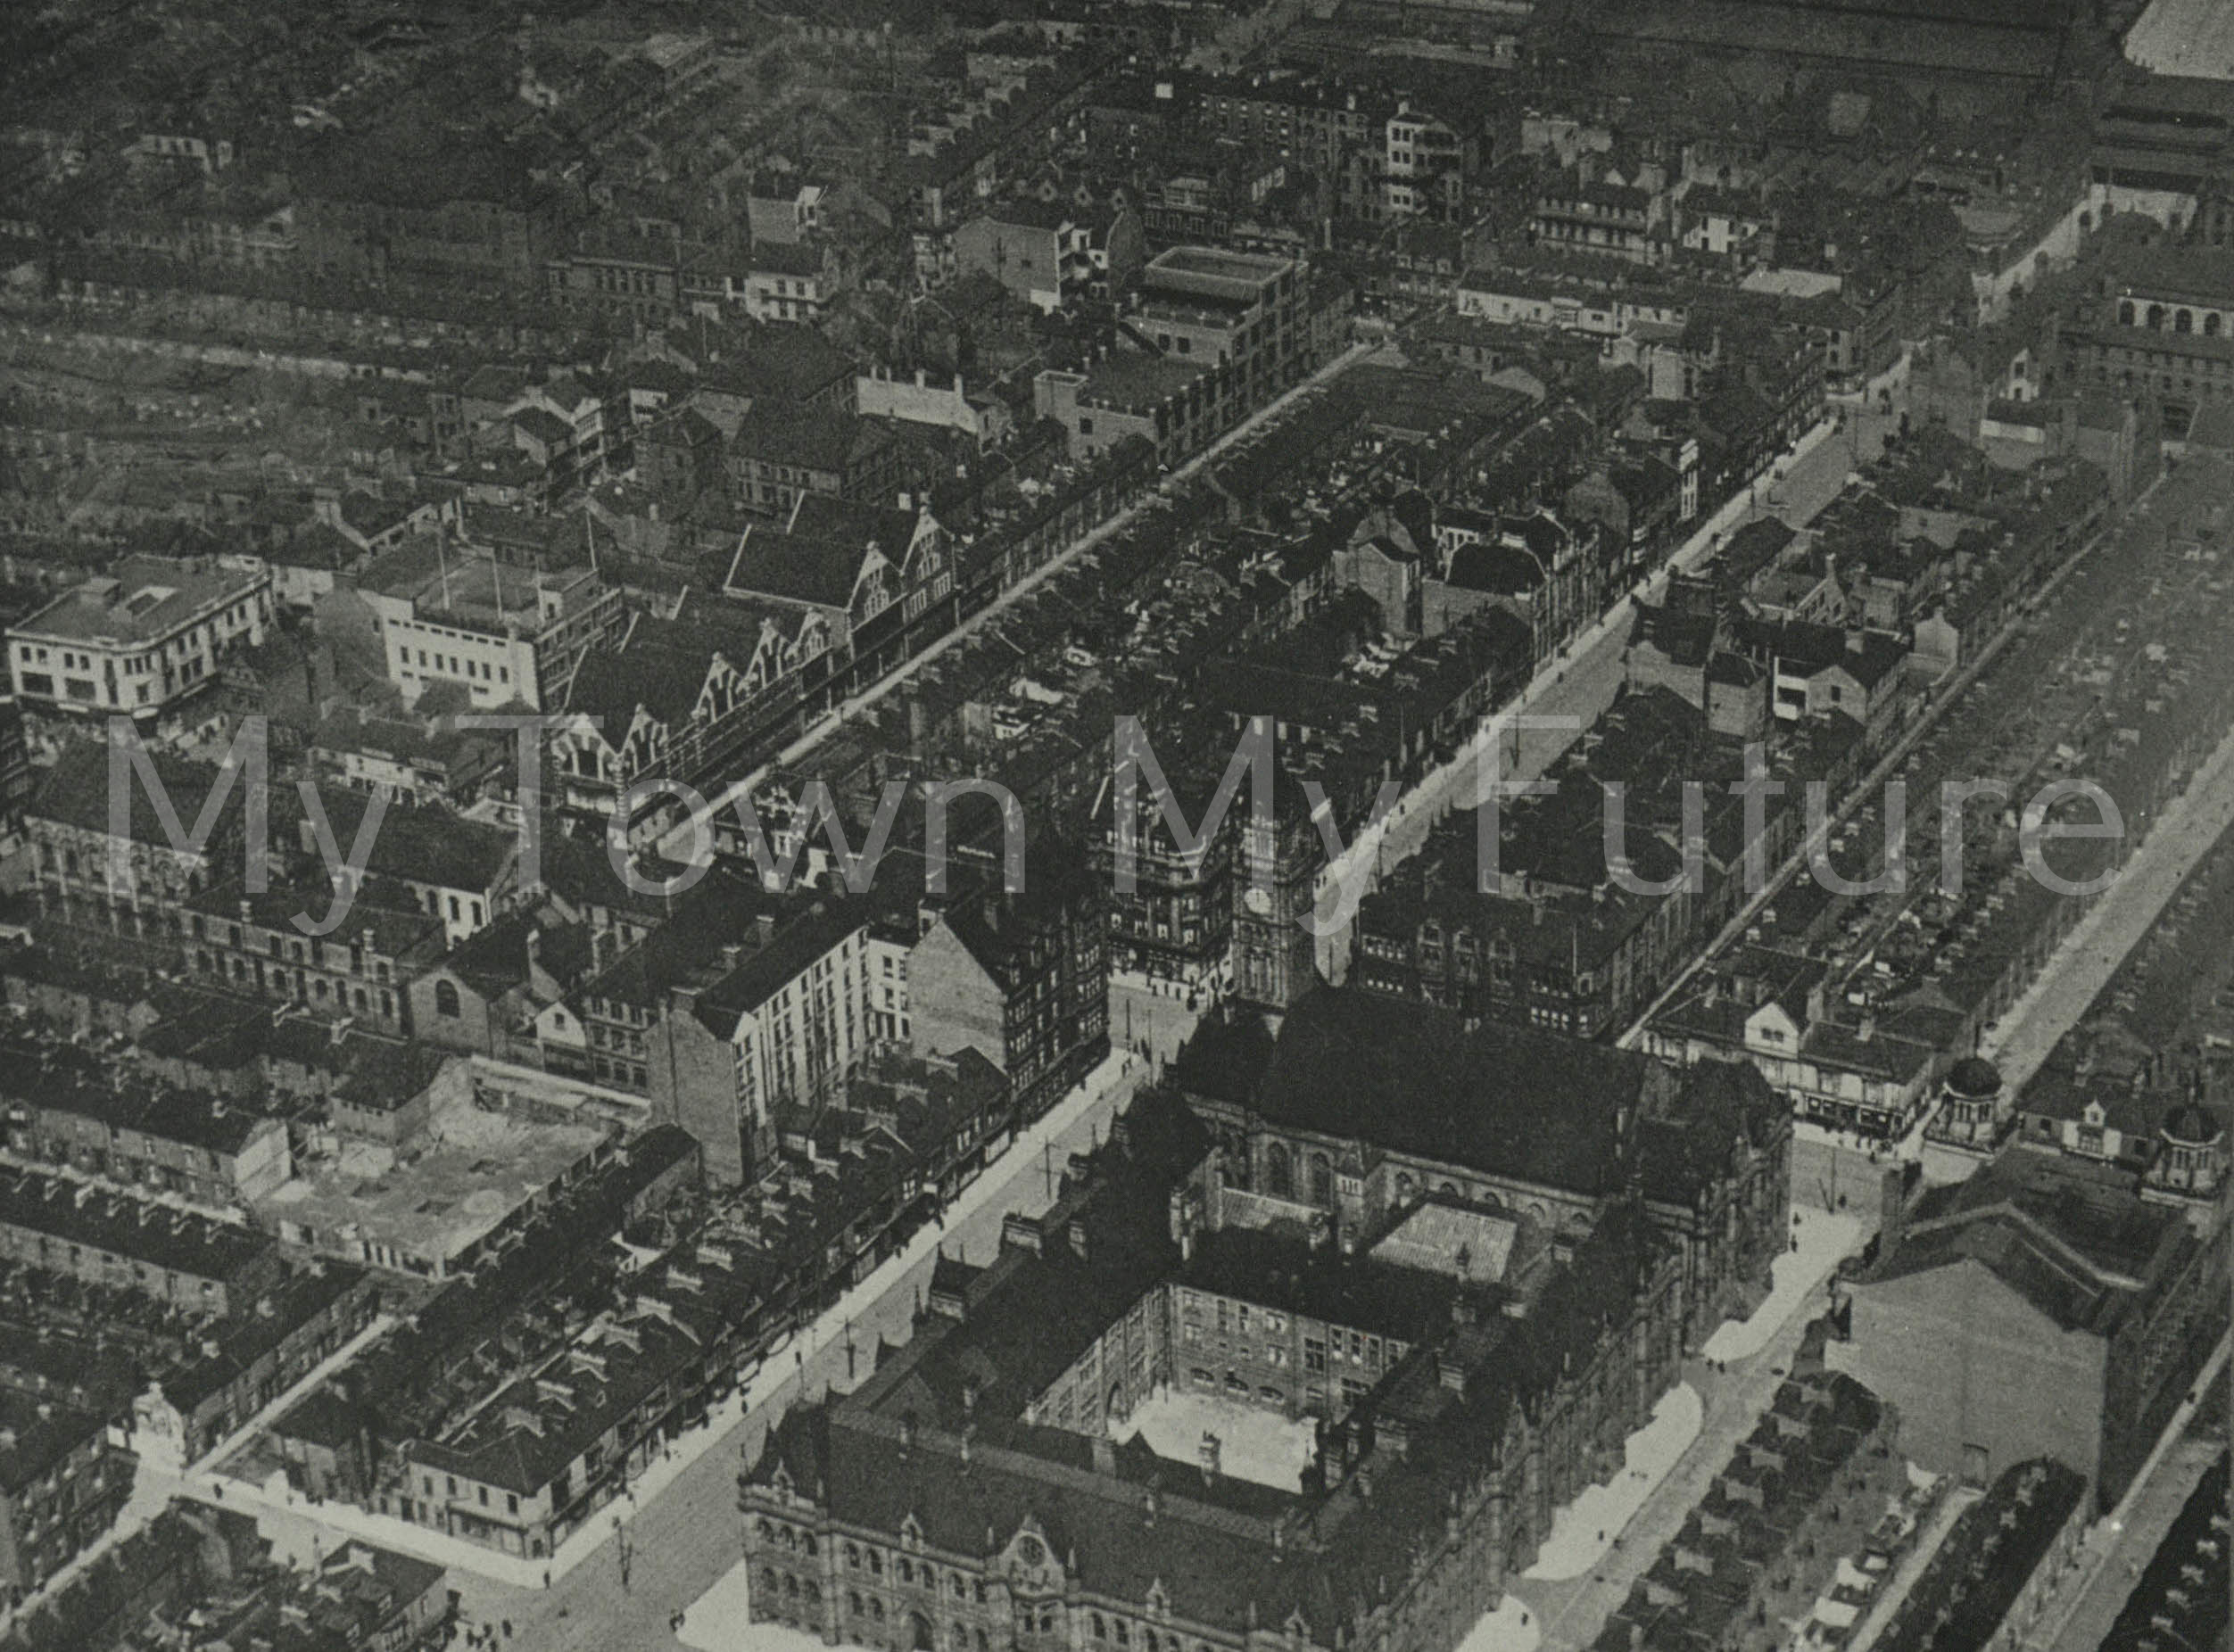 Middlesbrough Town Centre 1930